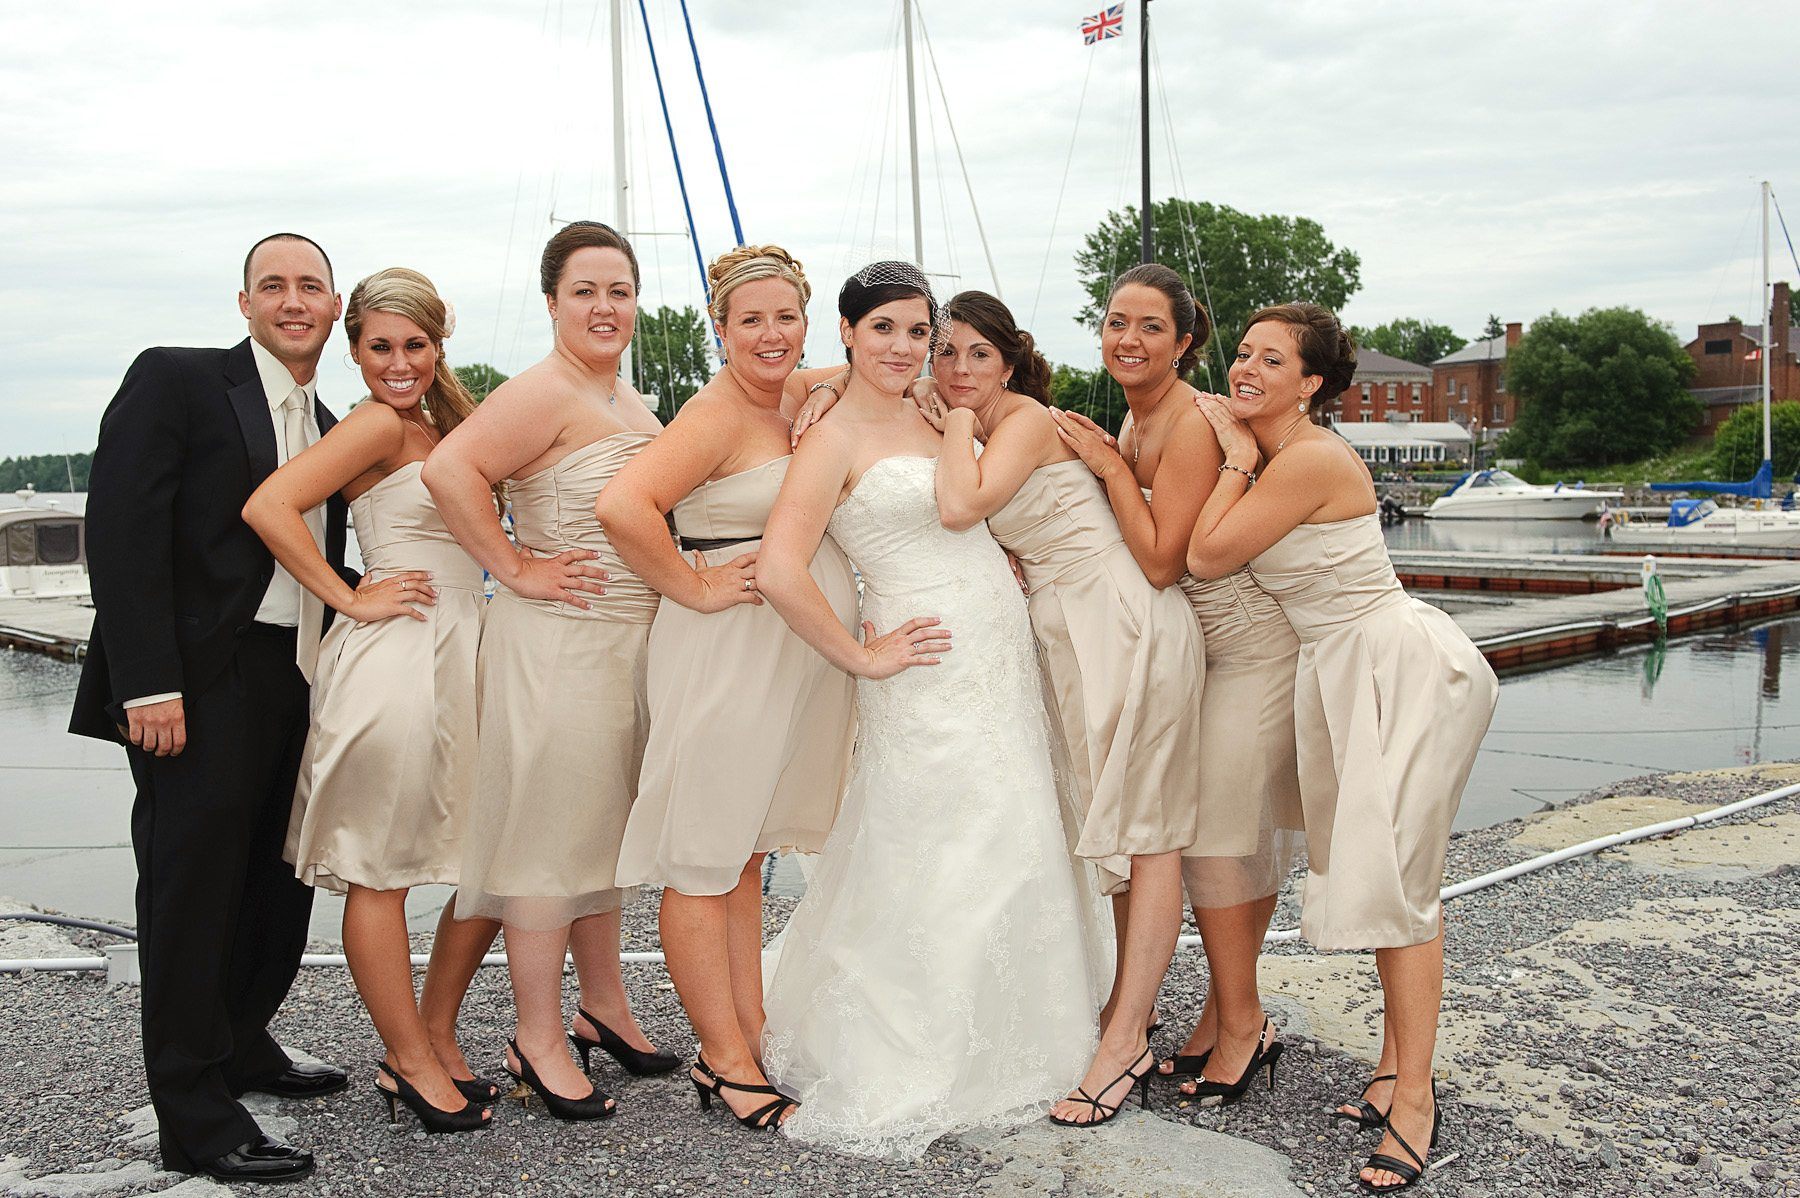 What color bridesmaid dresses with champagne wedding dress gallery champagne bridesmaids dresses cyd the sweetest occasion the champagne bridesmaids dresses cyd the sweetest occasion ombrellifo ombrellifo Images